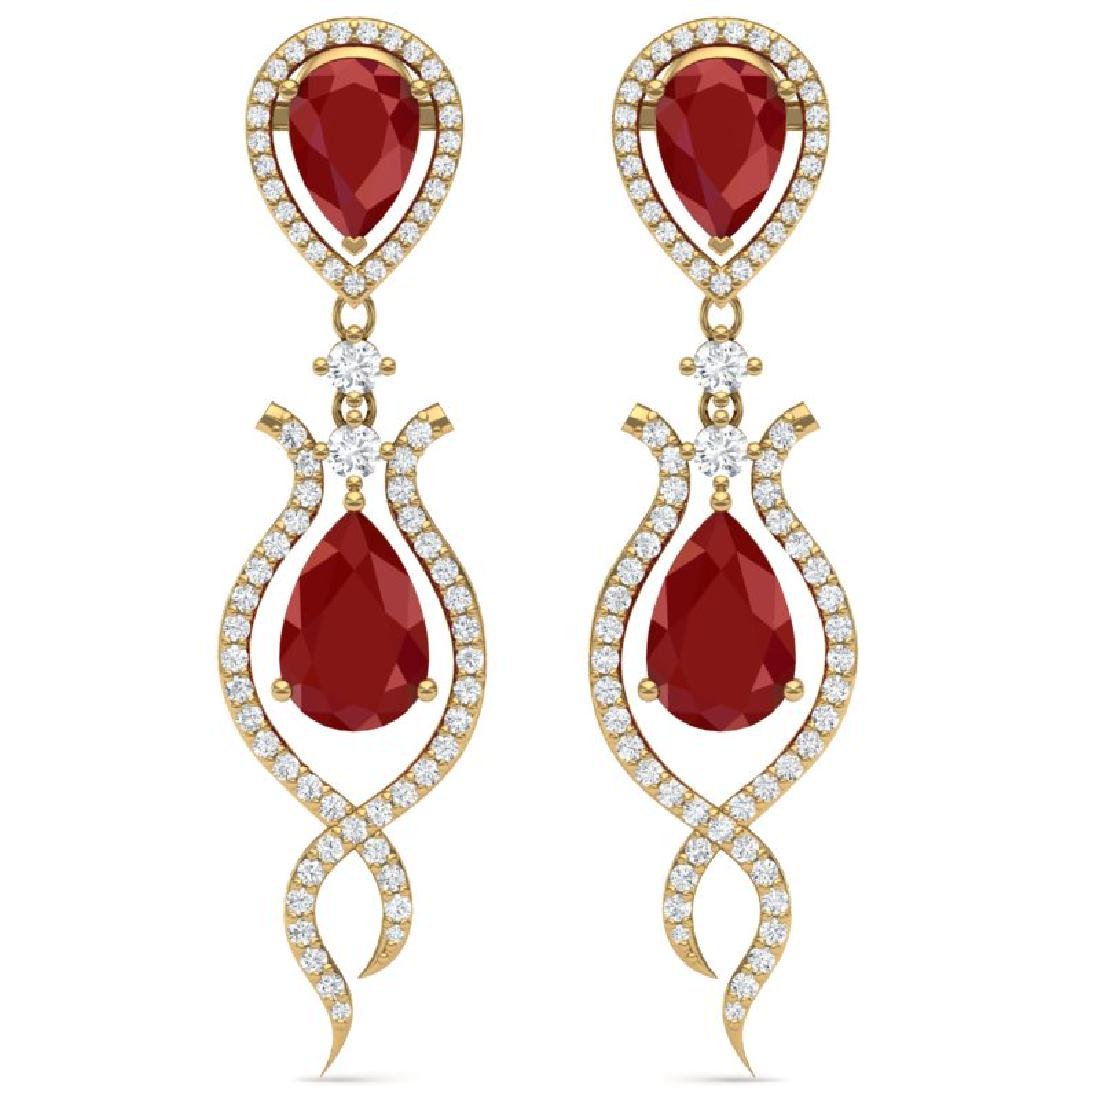 16.57 CTW Royalty Designer Ruby & VS Diamond Earrings